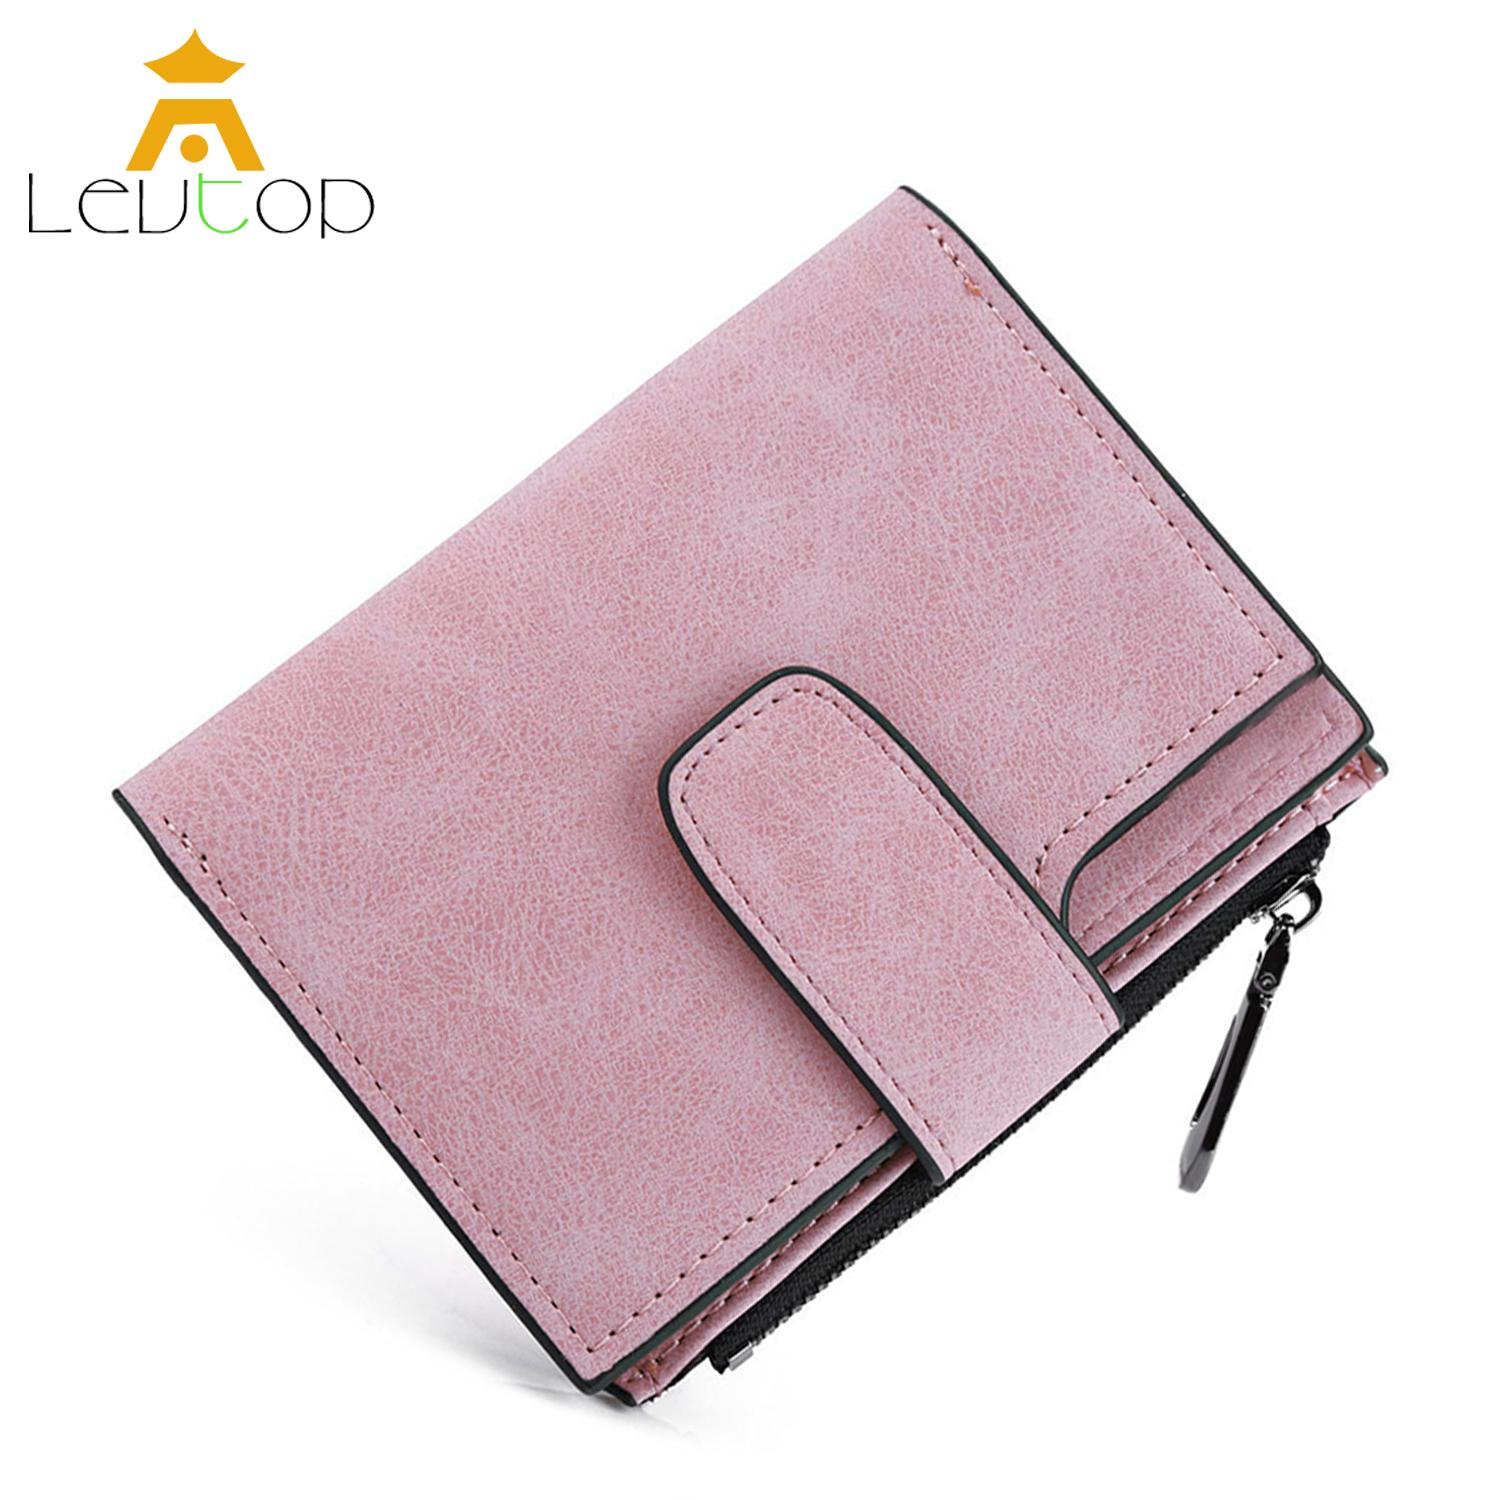 custom Available Reasonable Solid Oil Dark Red Buckle Pu Leather Passport Holder Built In Rfid Blocking Protect Personal Information Making Things Convenient For Customers